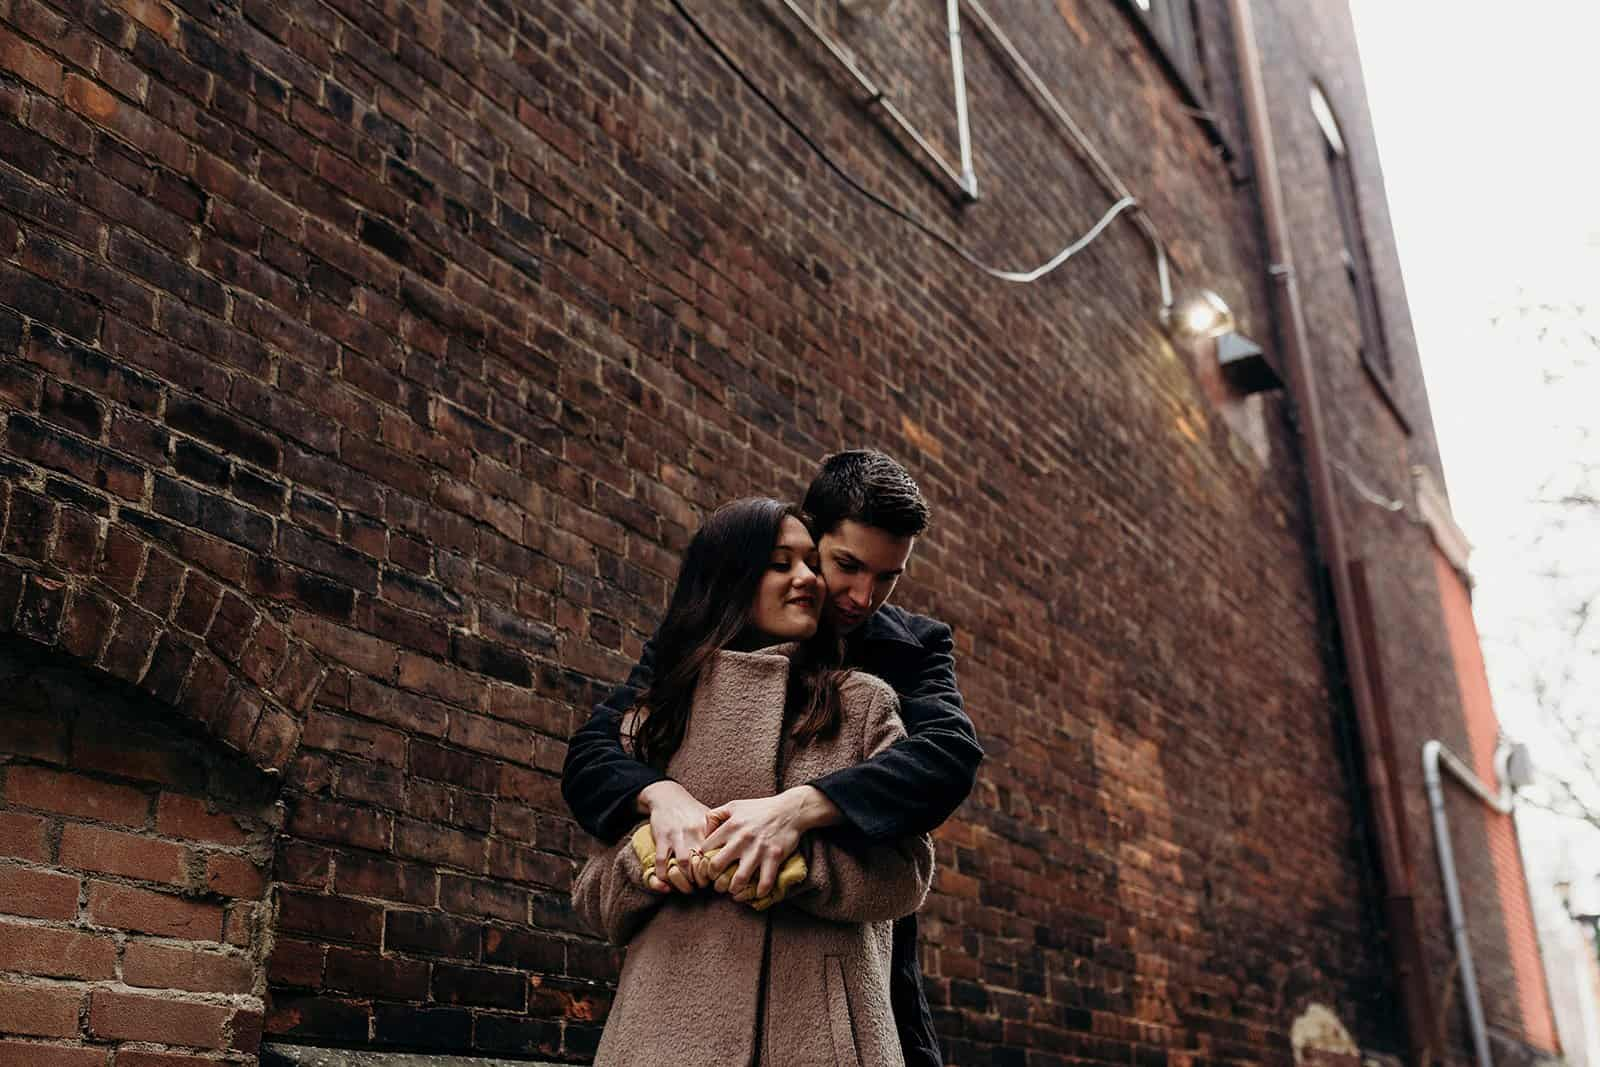 Man and woman embrace in alley in Kent Ohio